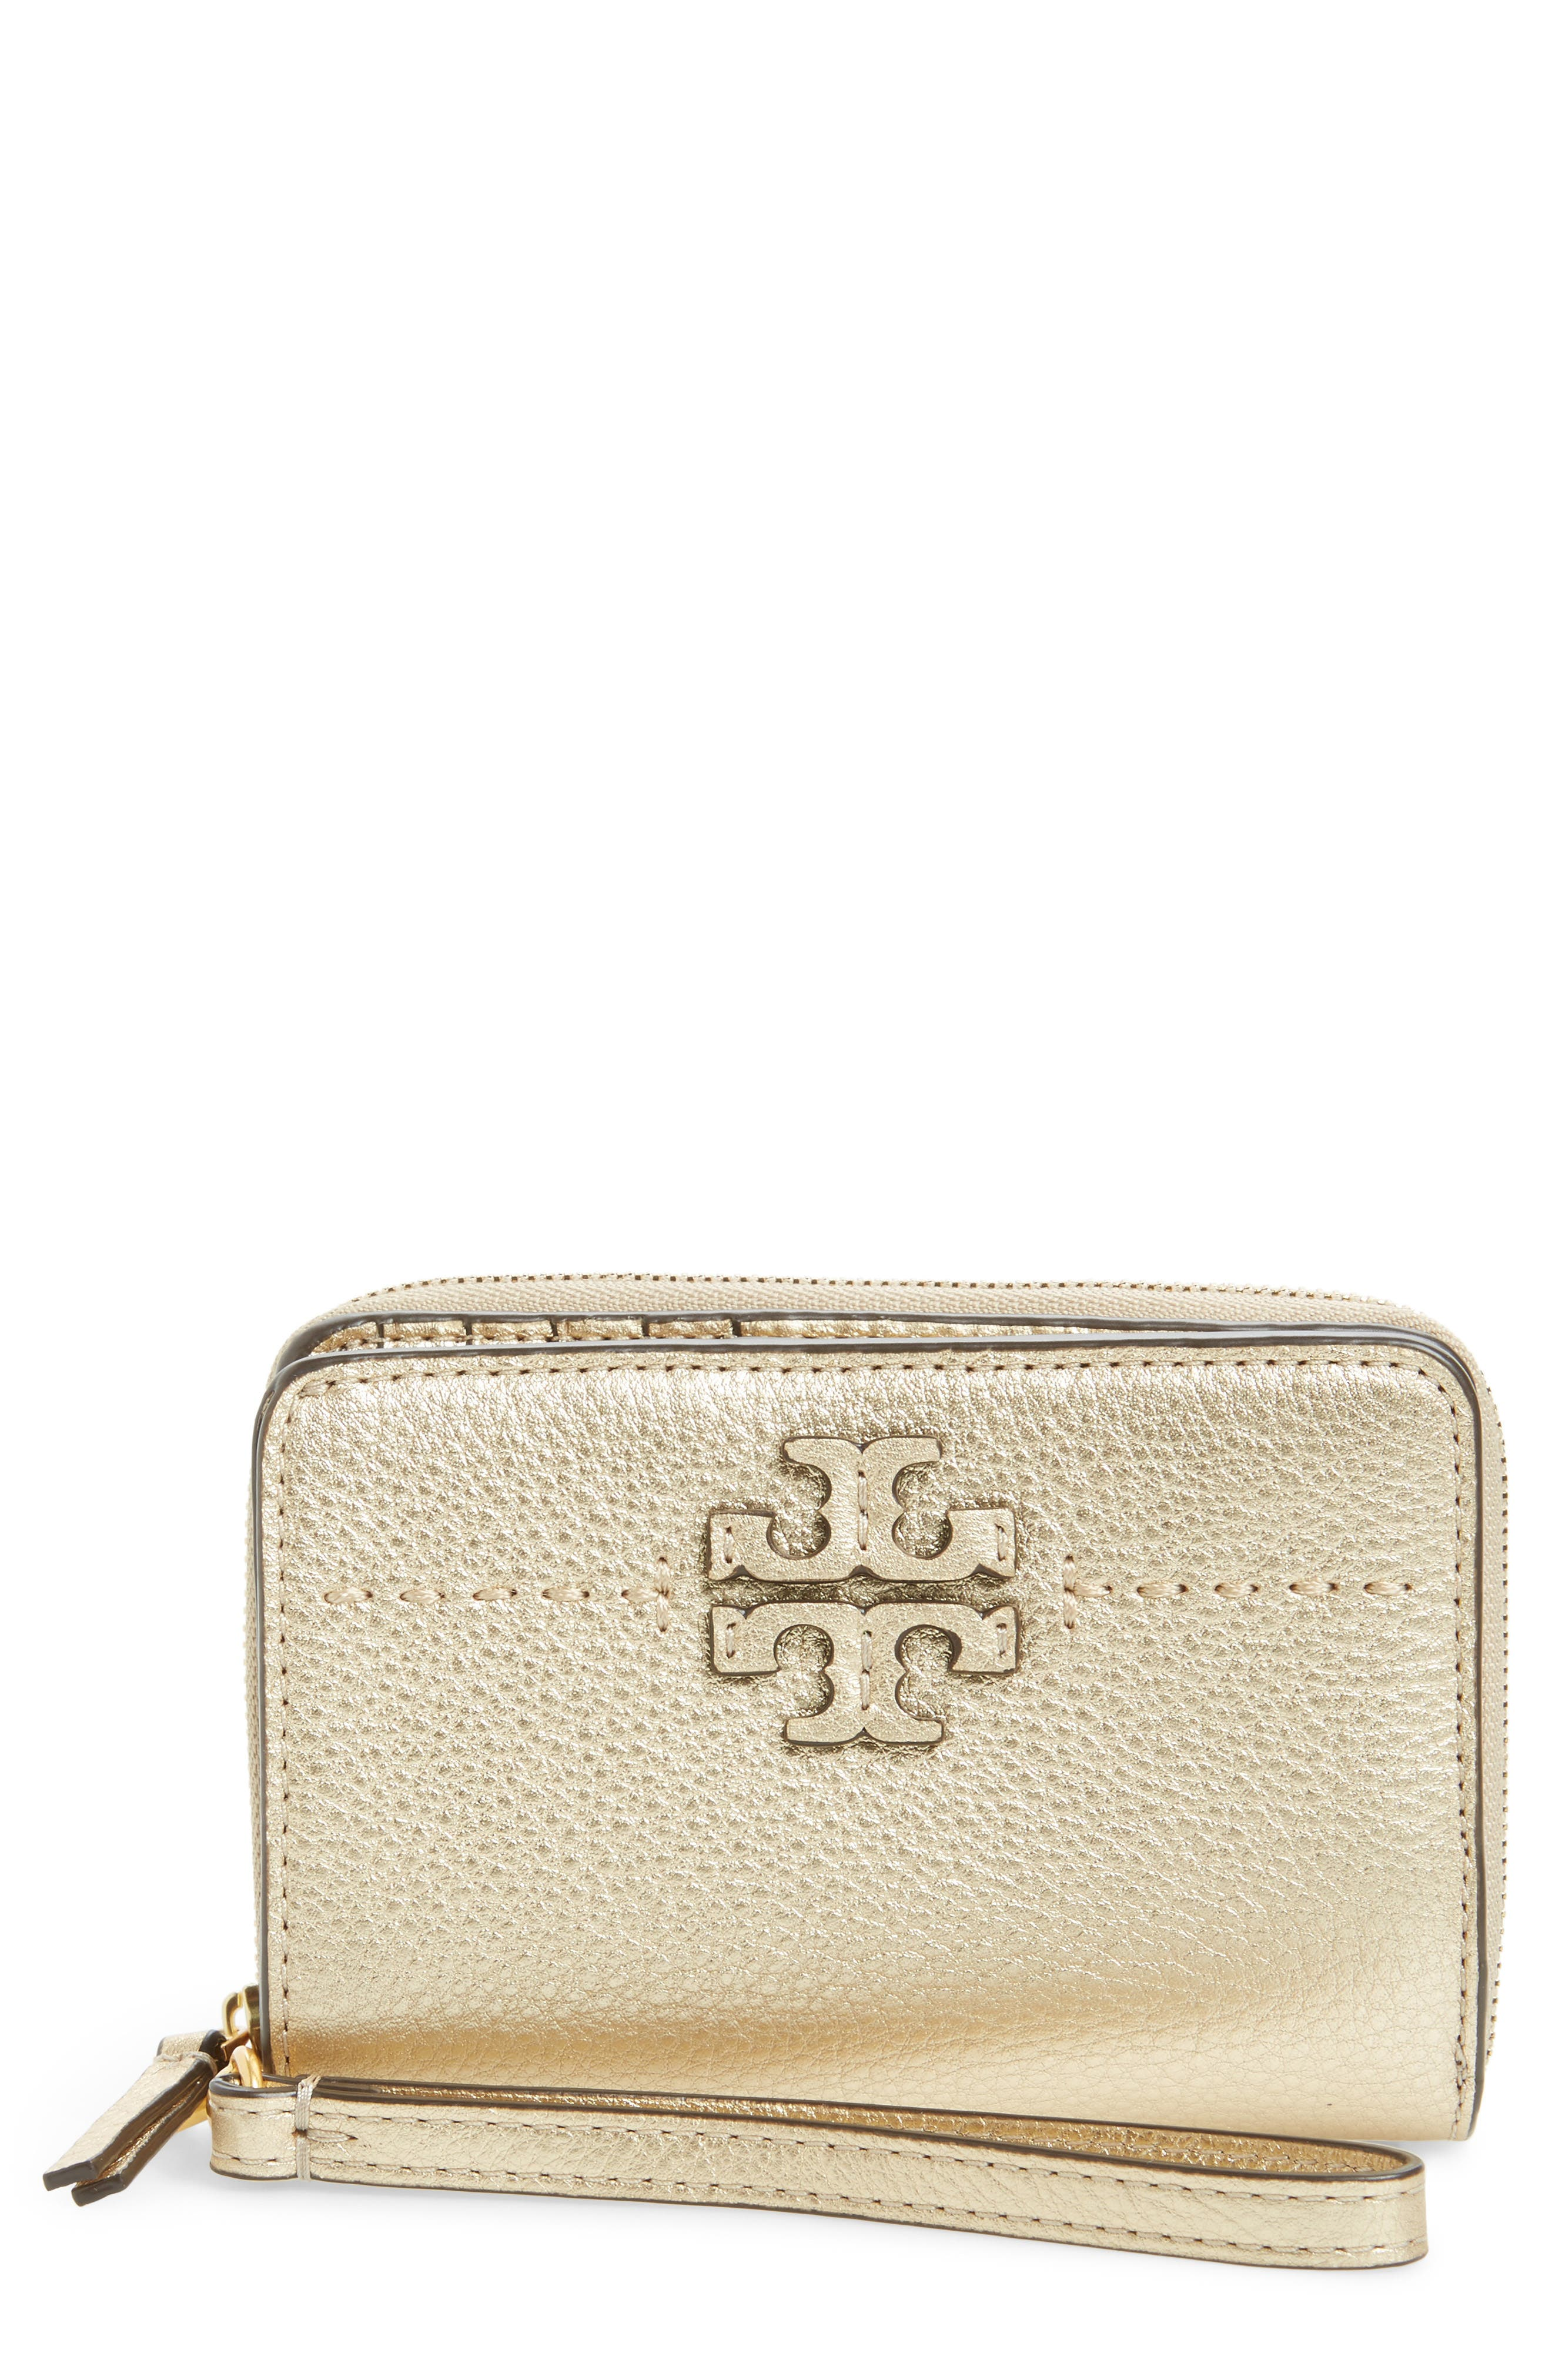 McGraw Leather Bifold Wallet,                             Main thumbnail 1, color,                             Gold